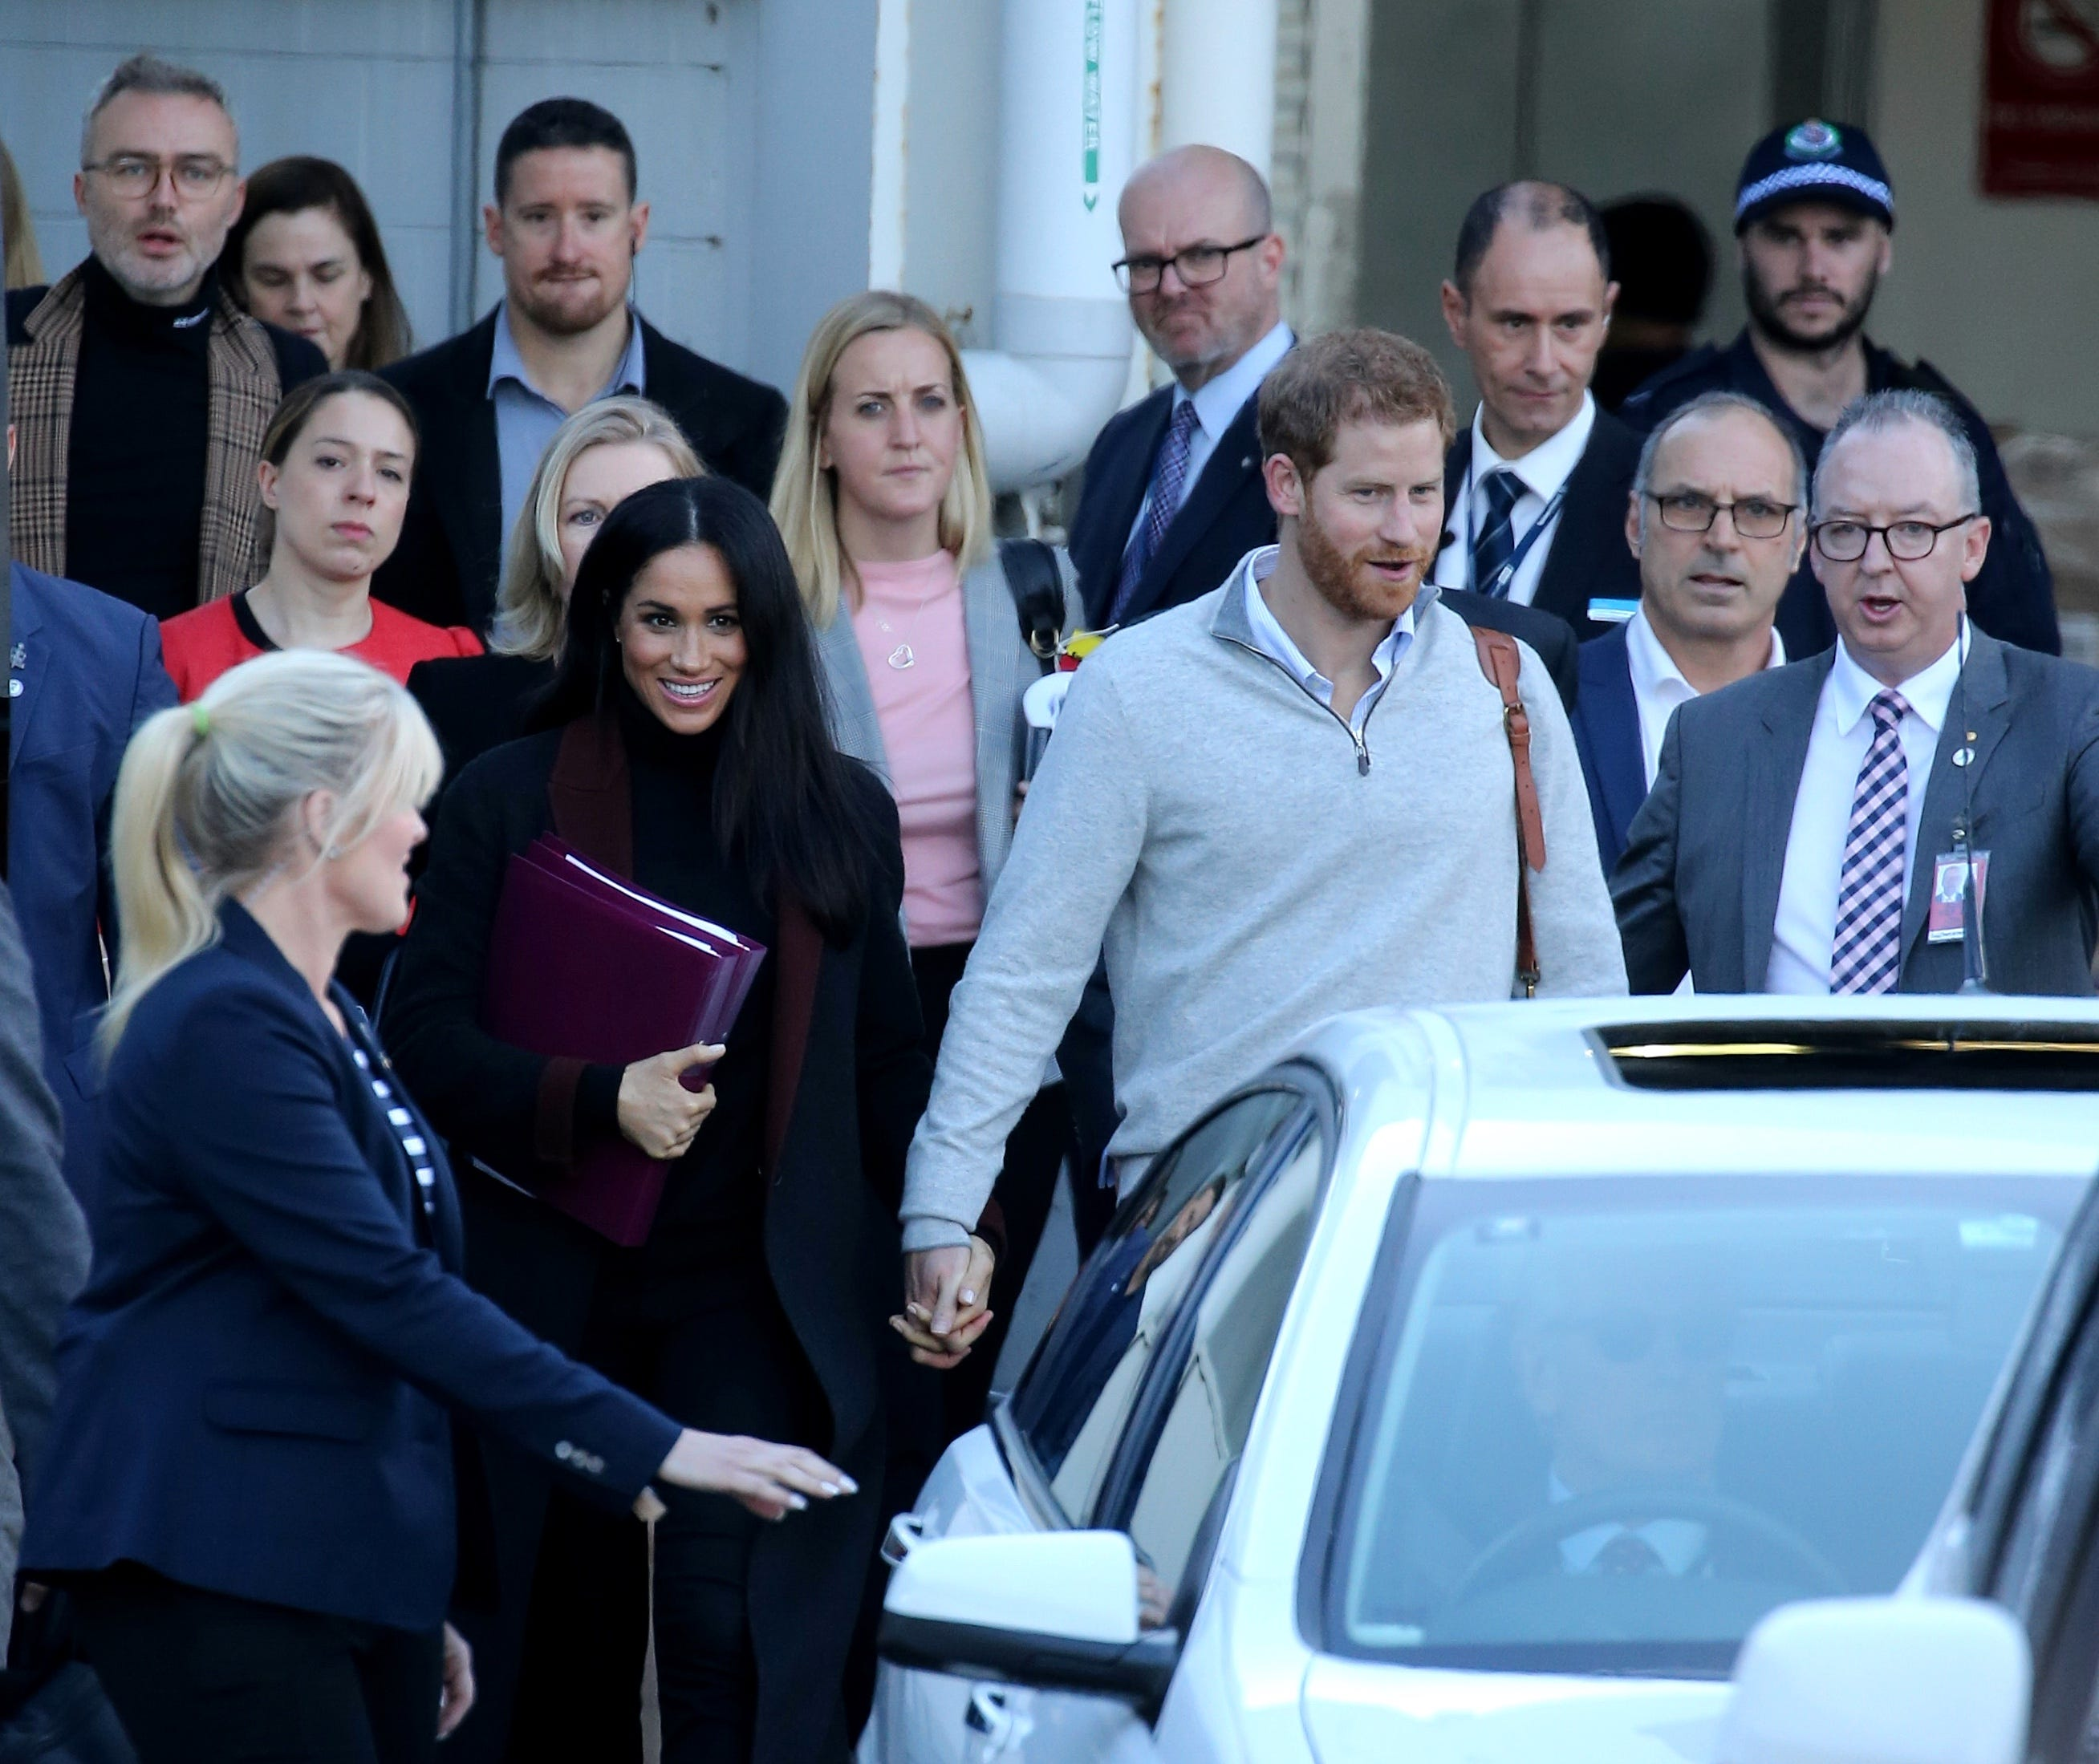 Prince Harry Duchess Meghan Arrive In Australia For Official Visit